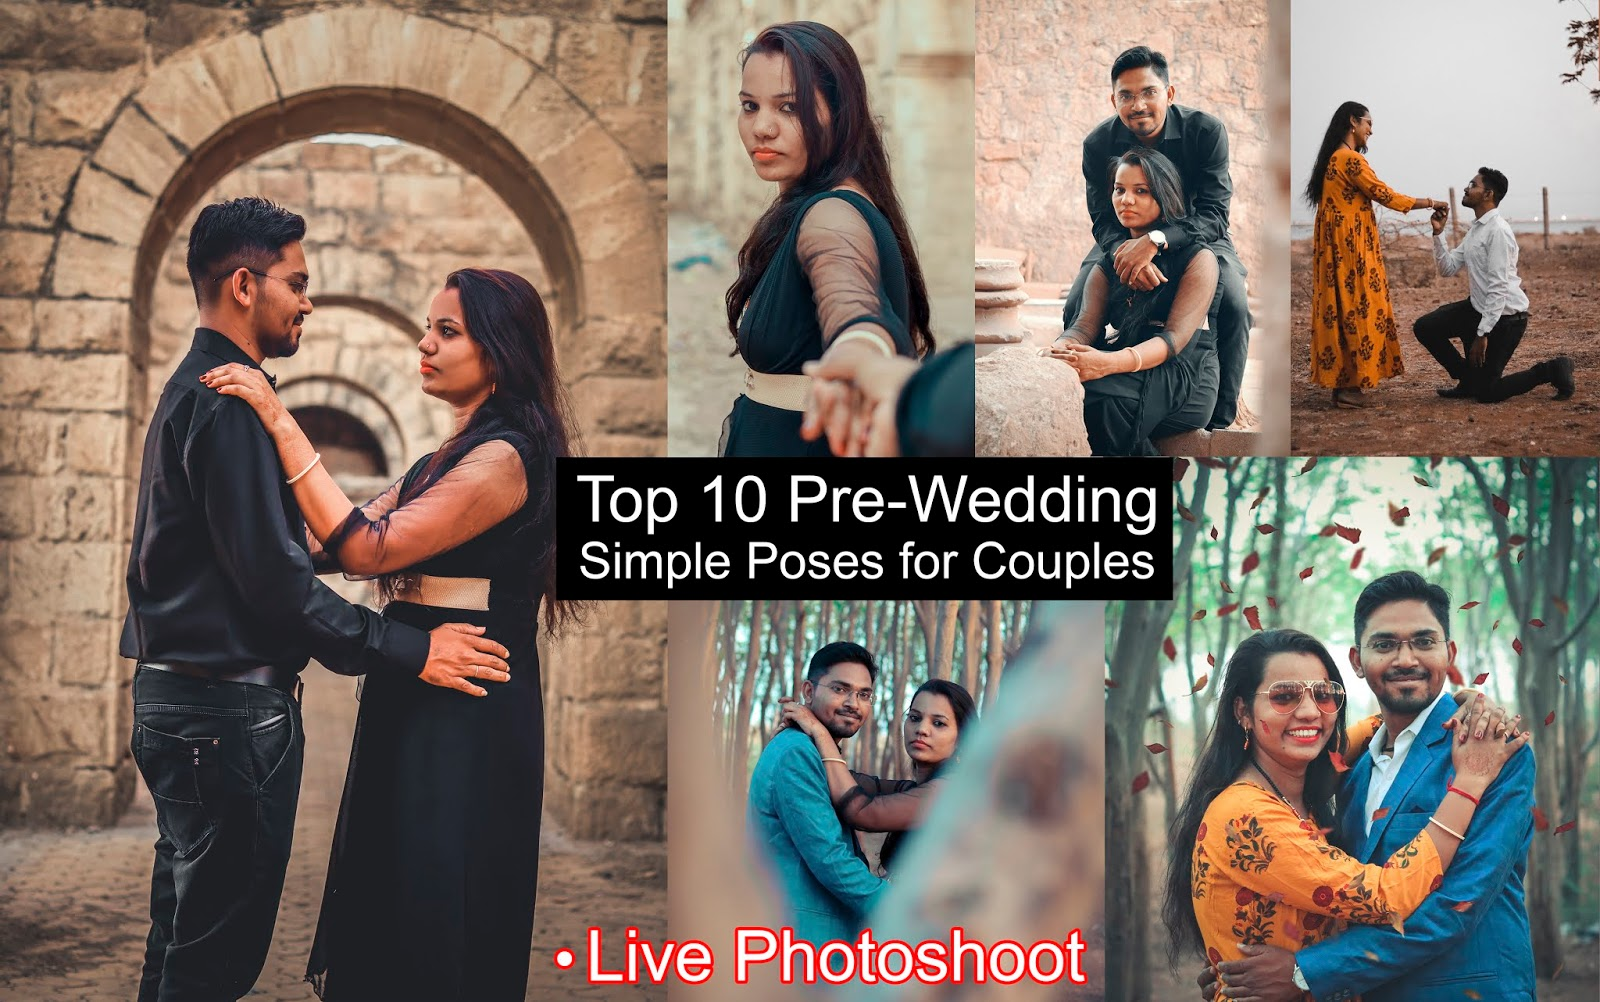 Top 10 Simple Poses for Couples with Presets | Couple Photography | Top 10 Pre-Wedding Couple Poses